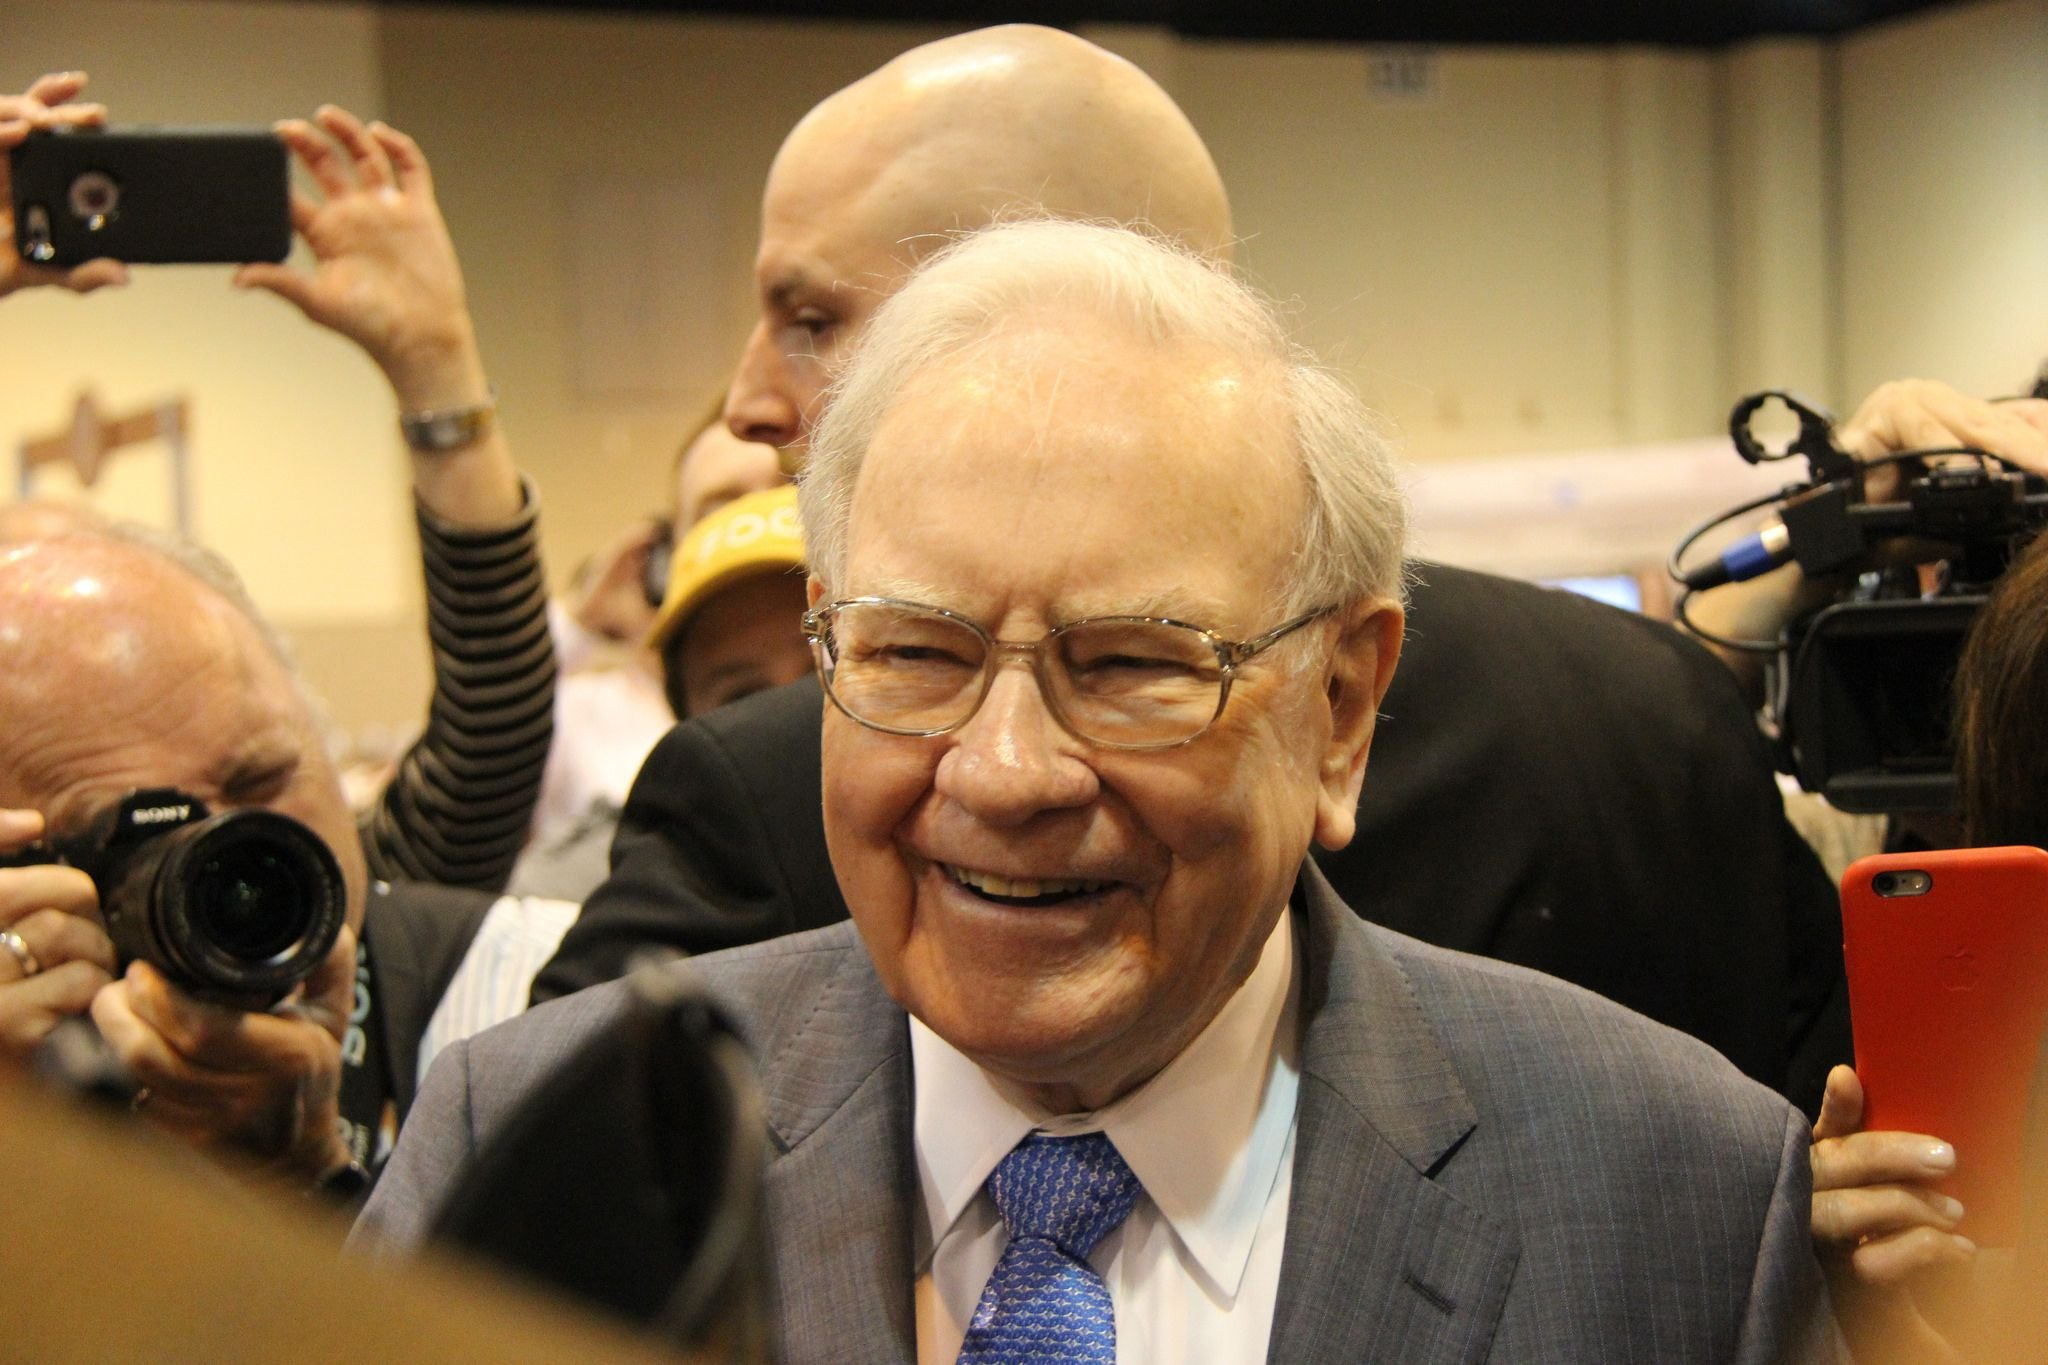 The 3 Best Warren Buffett Stocks to Buy With Your Stimulus Check | The Motley Fool